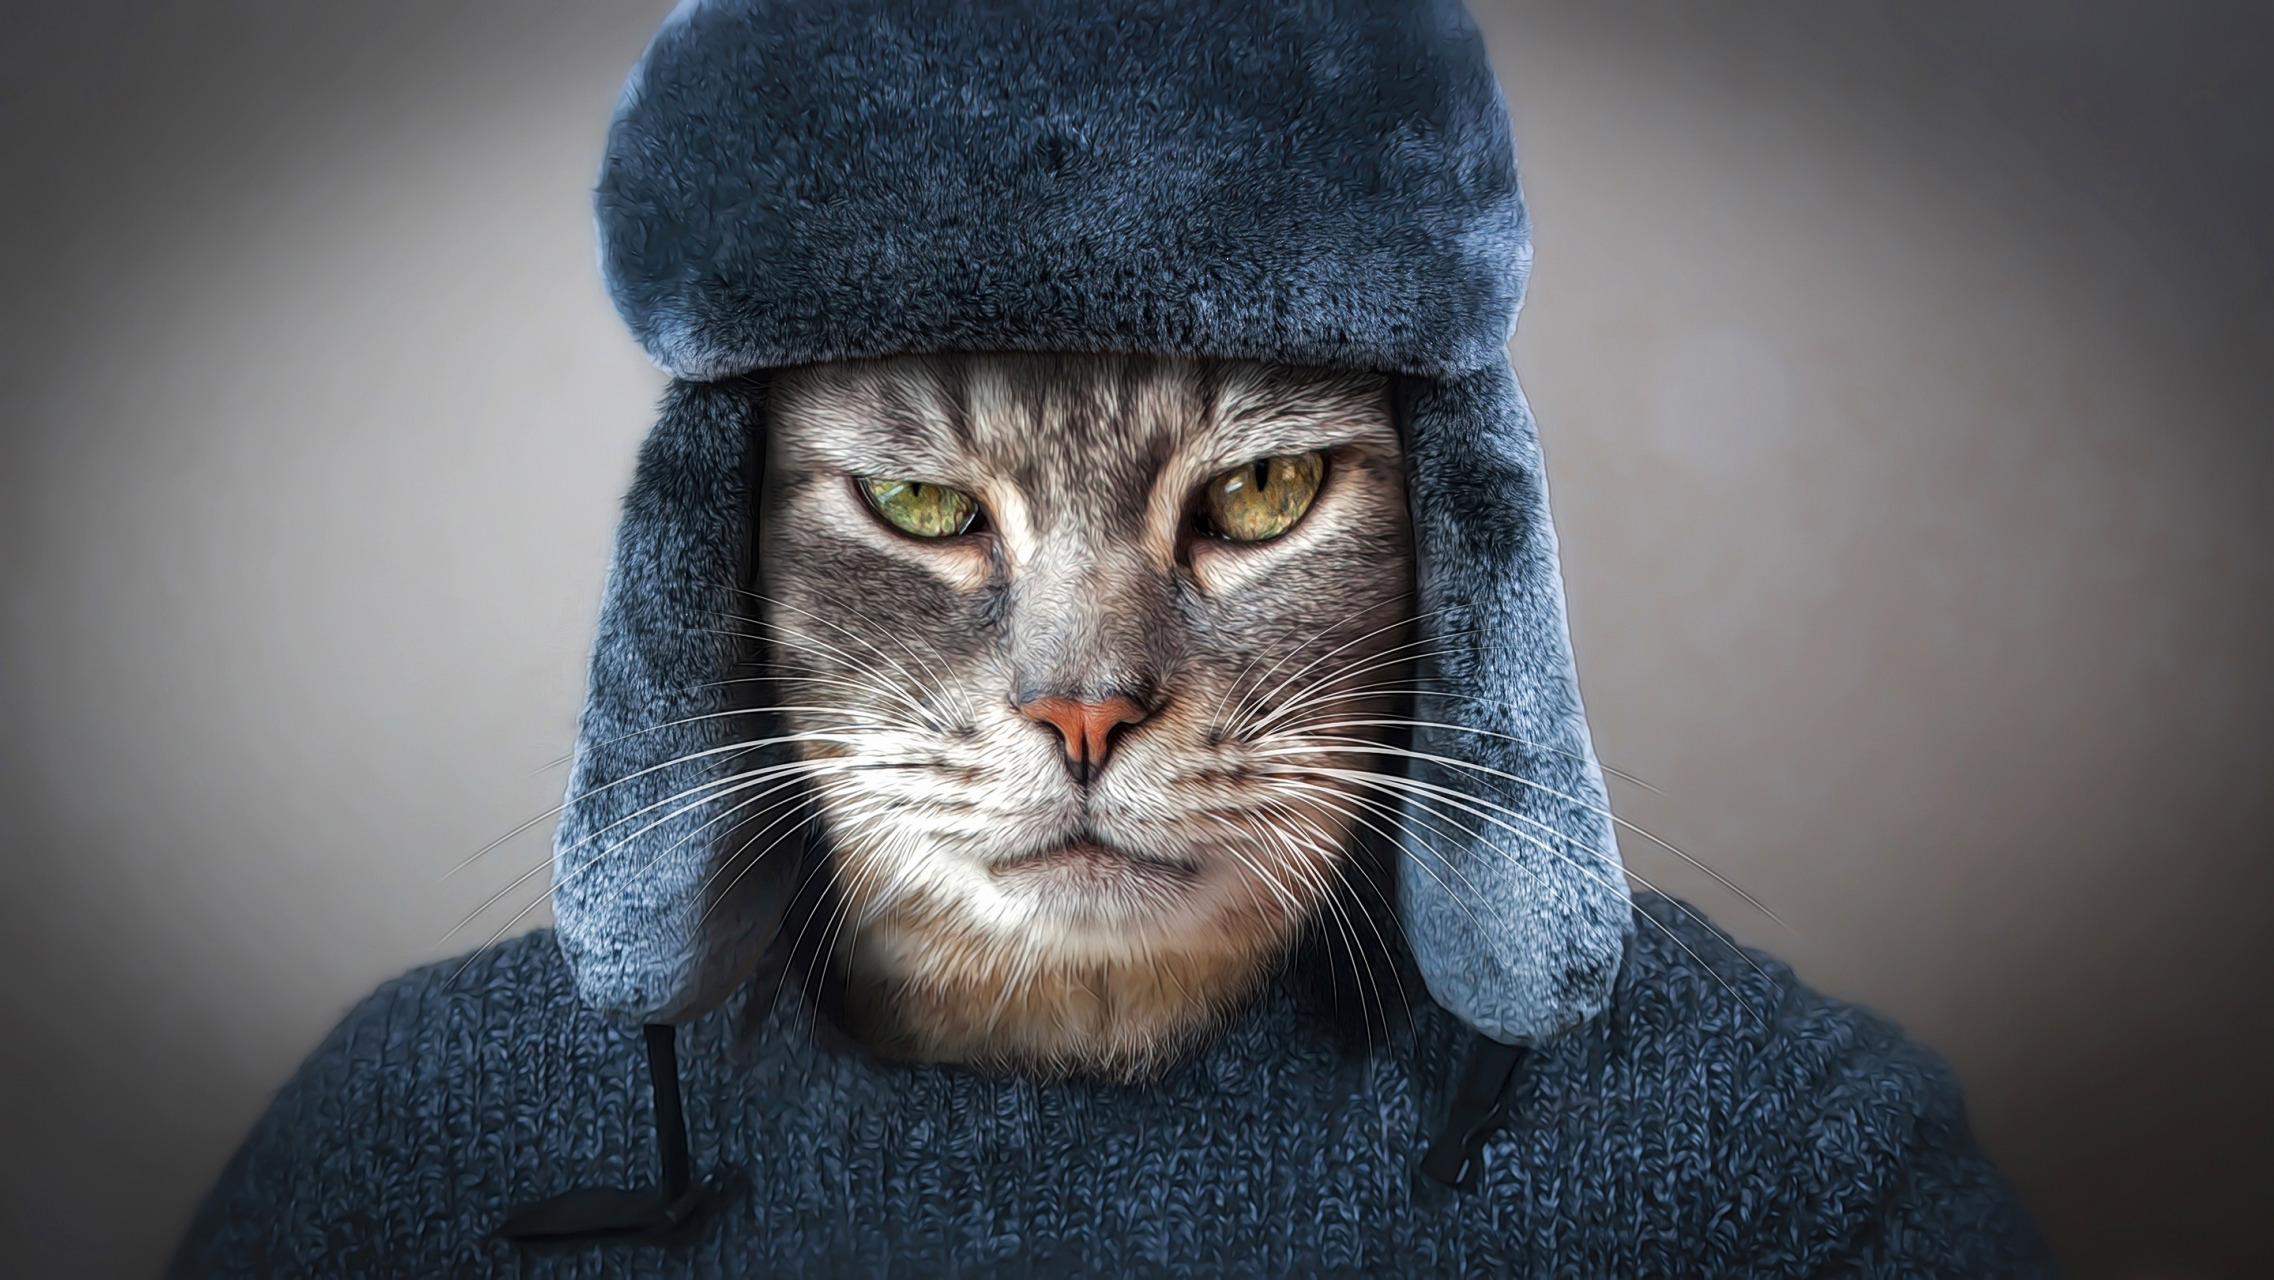 Cat With Man S Hat And Sweater On Hd Wallpaper Background Image